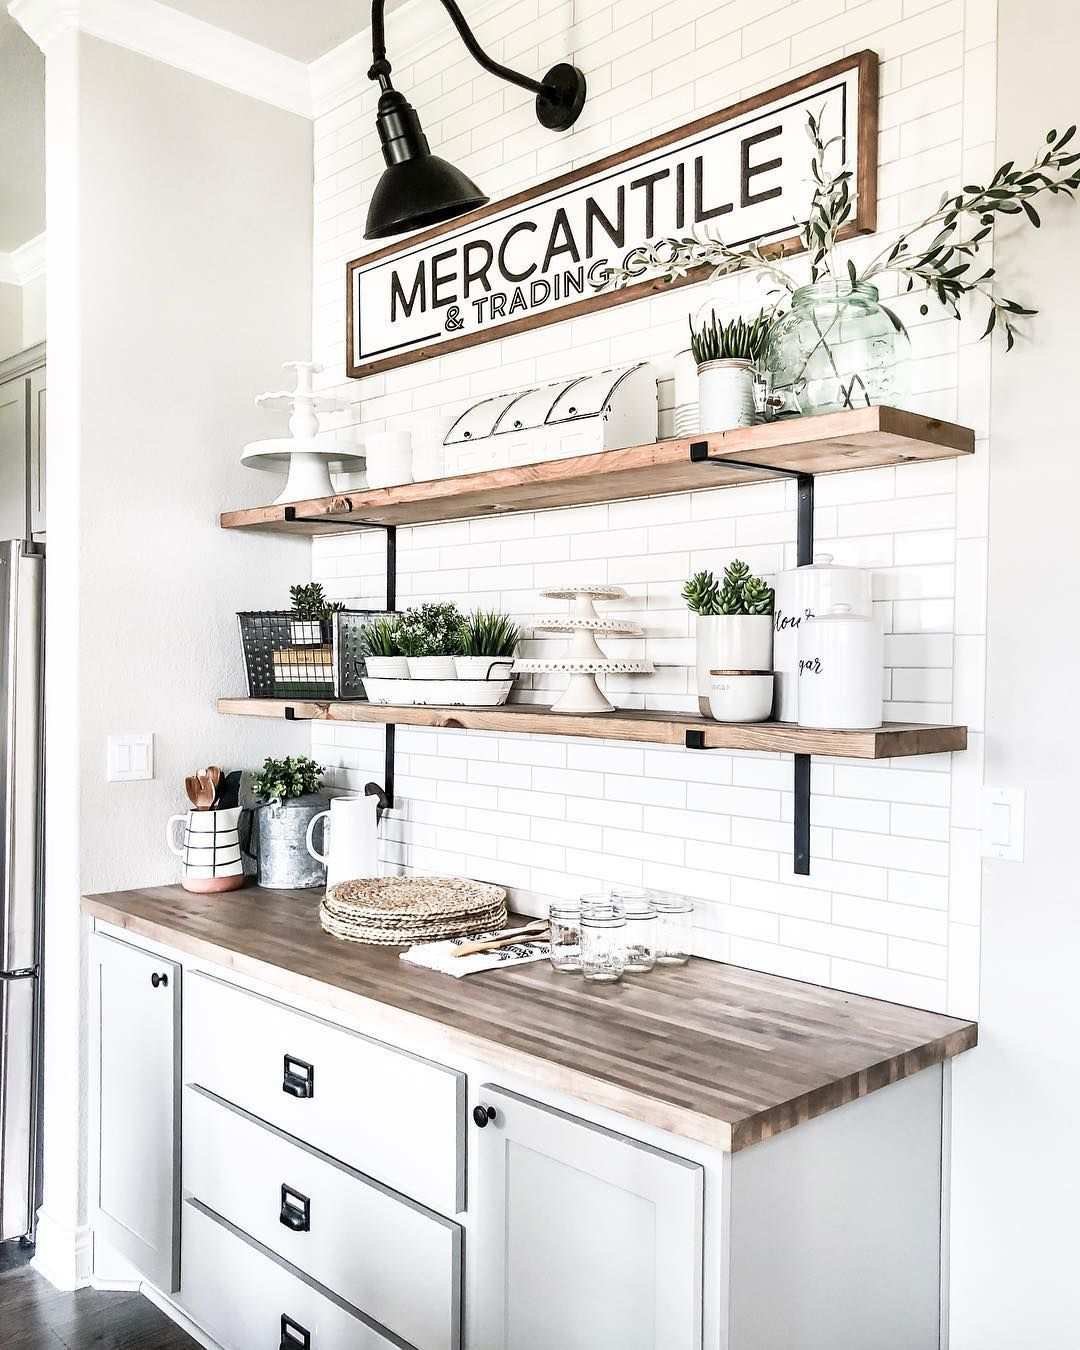 Sharing our dining room buffet area with you.  We installed subway tile with DIY…